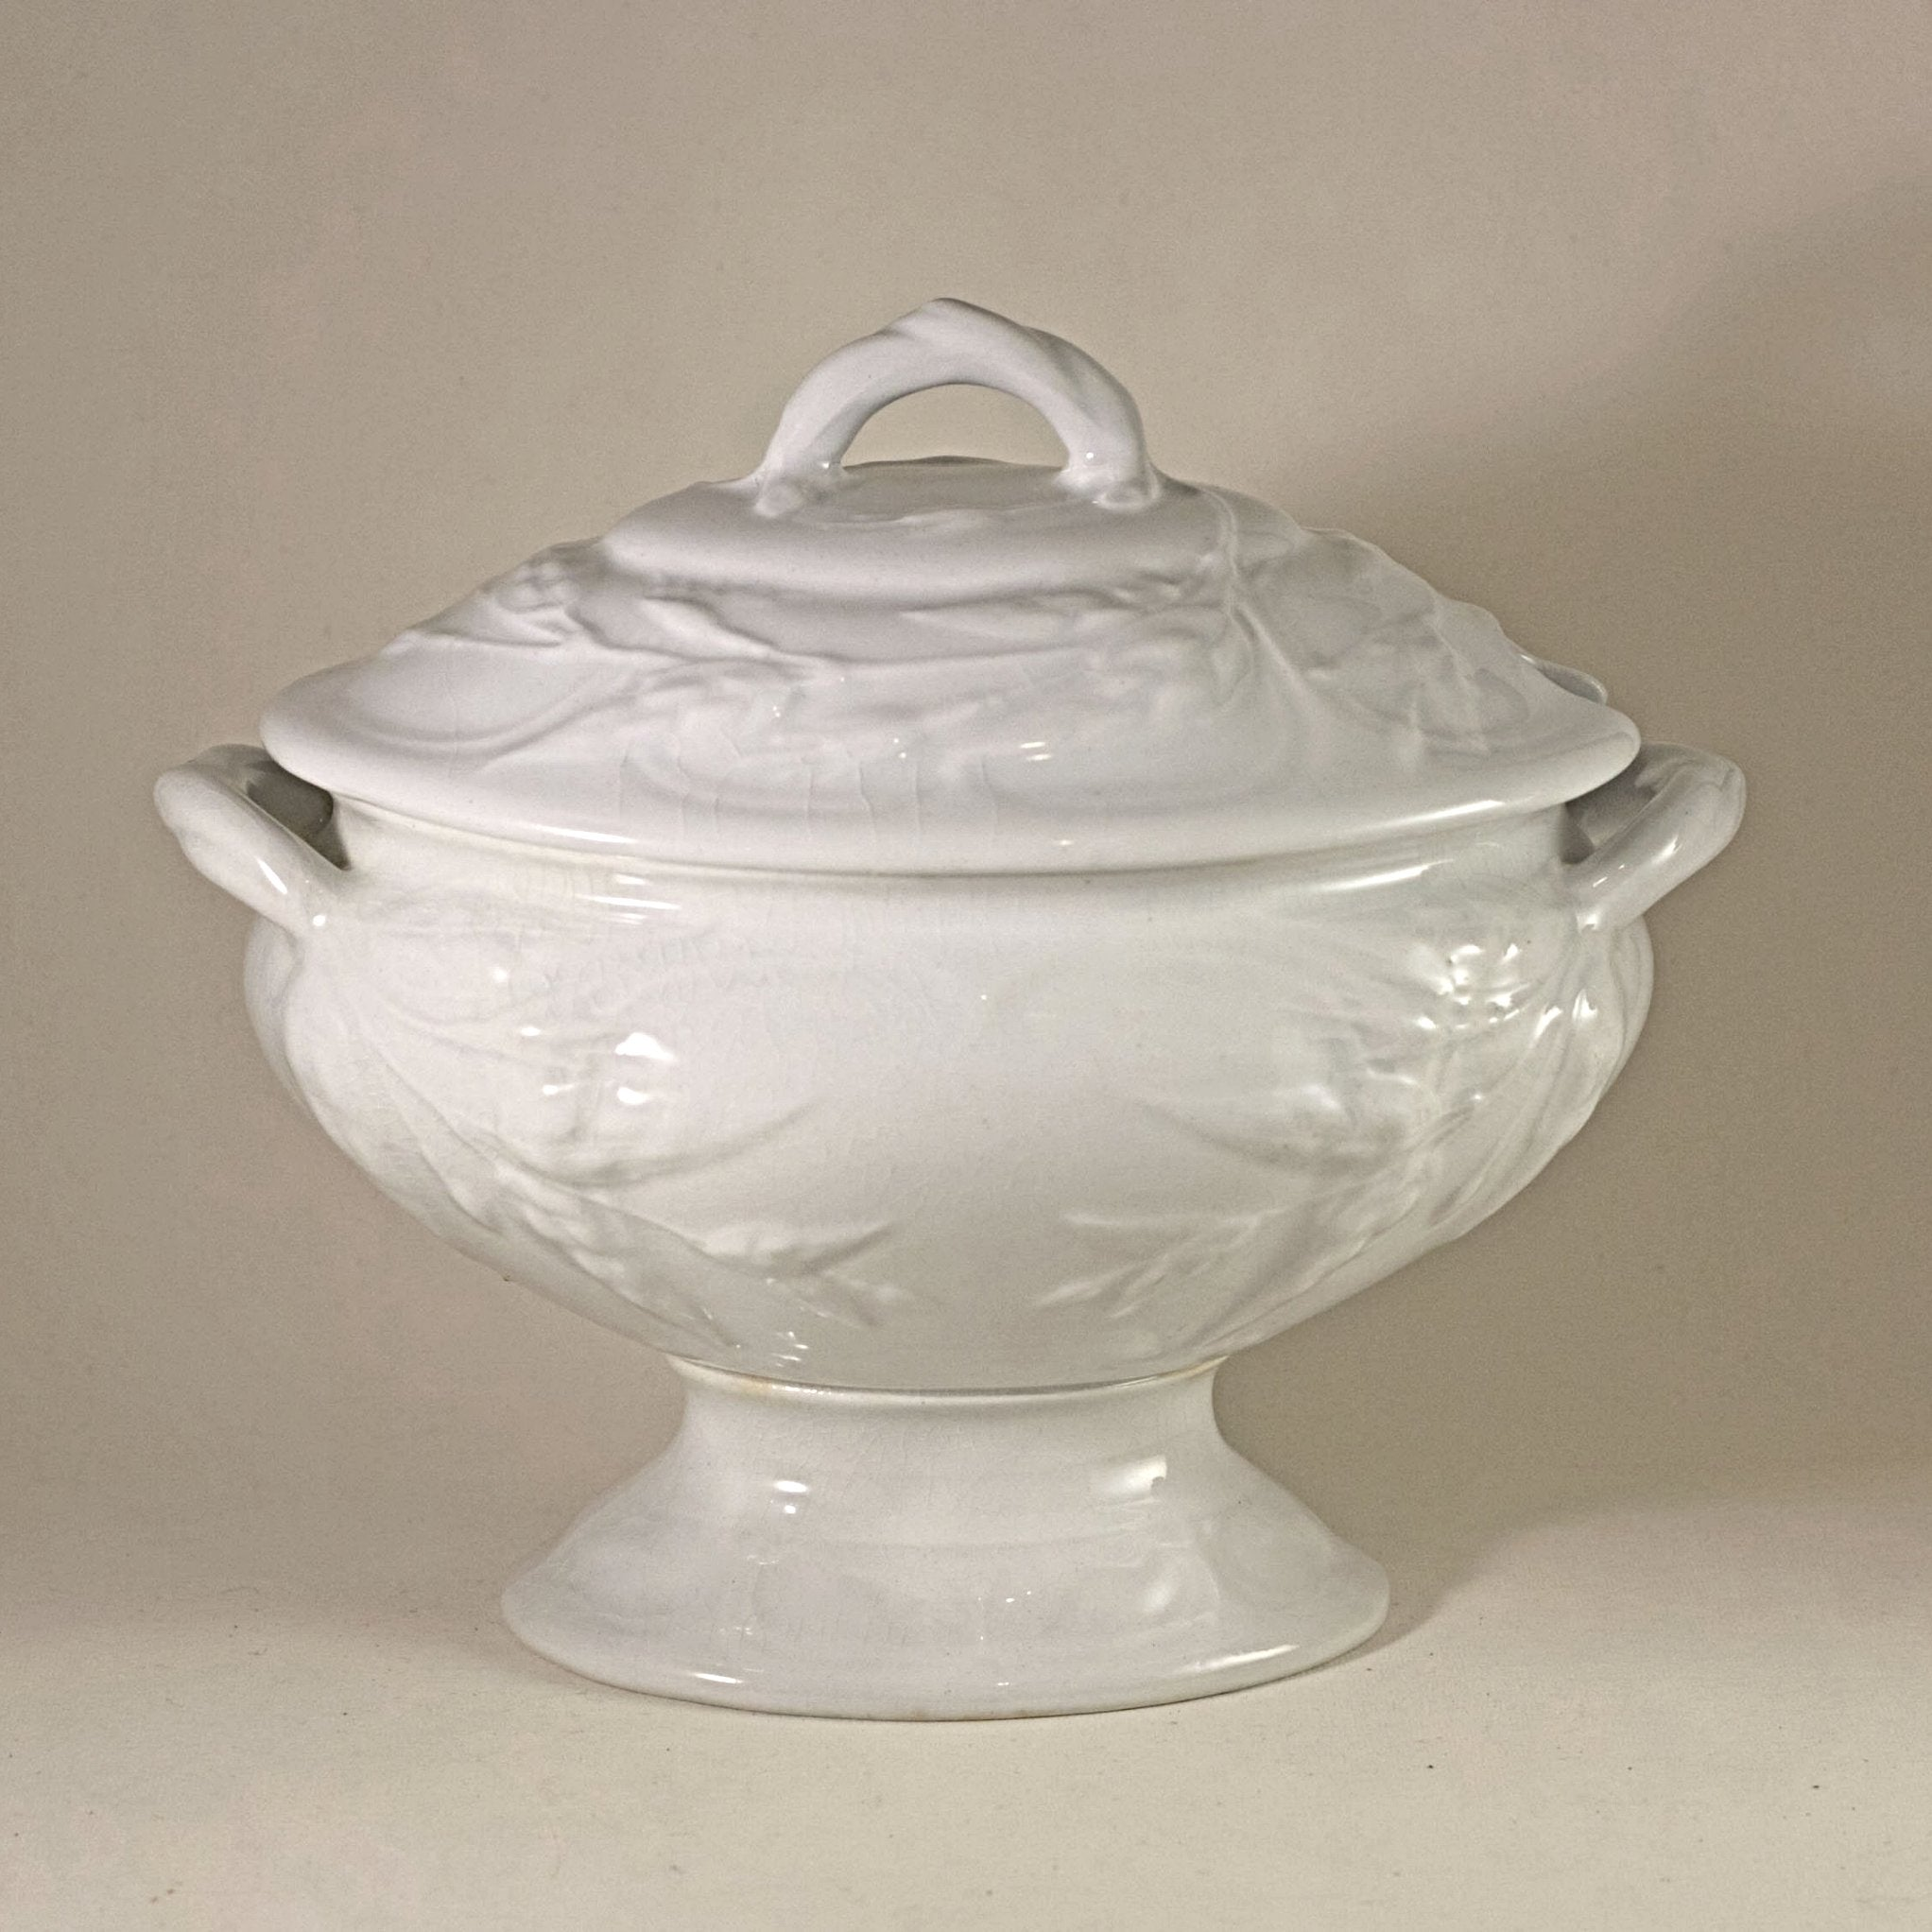 MINIATURE WHITE IRONSTONE Footed Covered Soup Tureen Imported by A De Forest of Ann Arbor Circa 19th Century